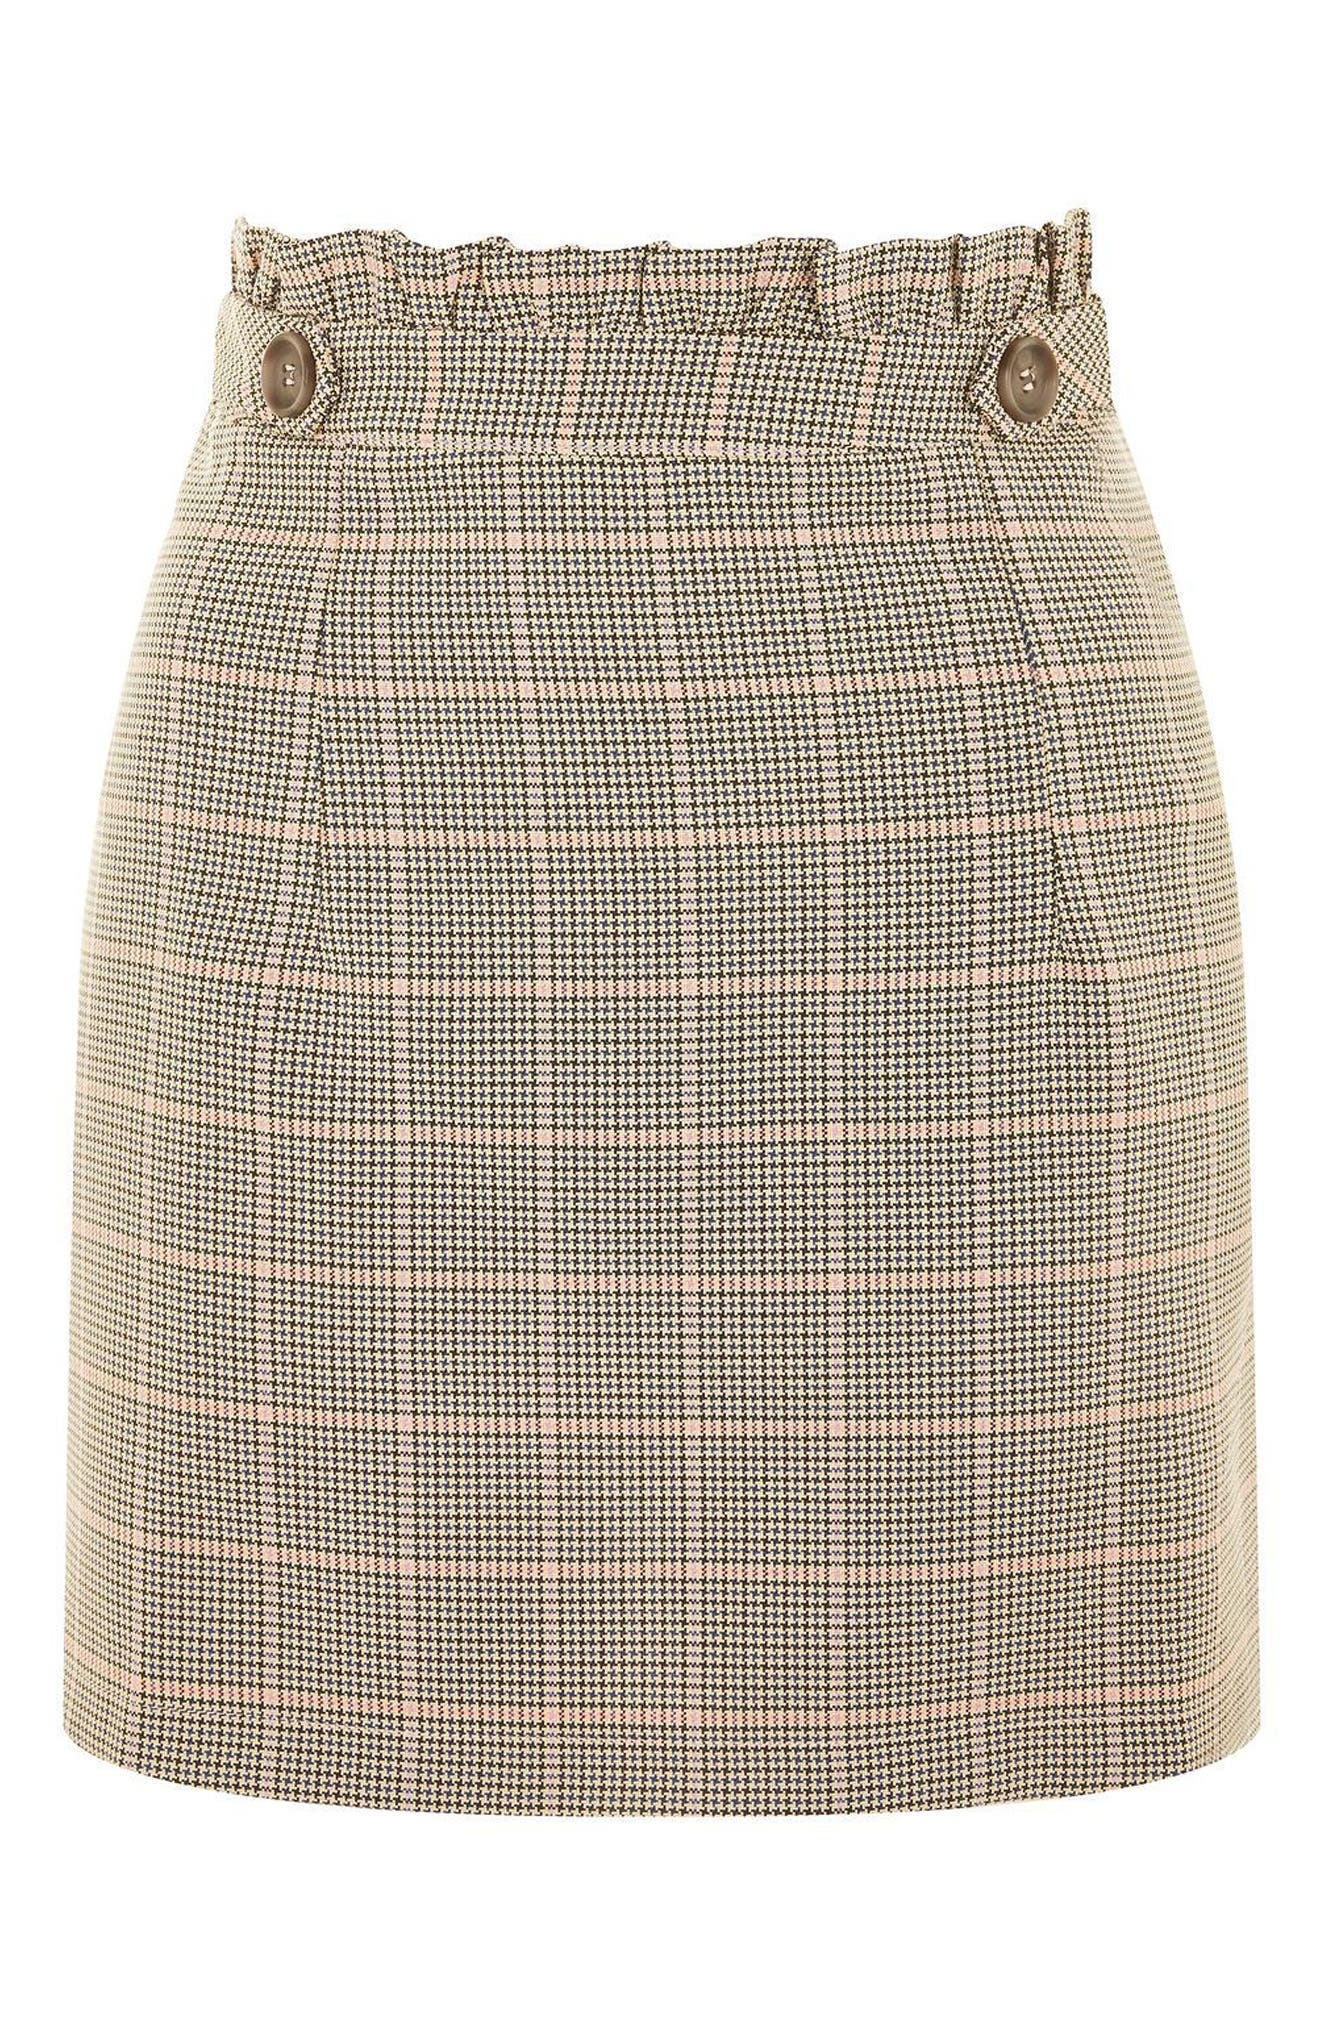 Frill Edge Heritage Check Skirt,                             Alternate thumbnail 3, color,                             230